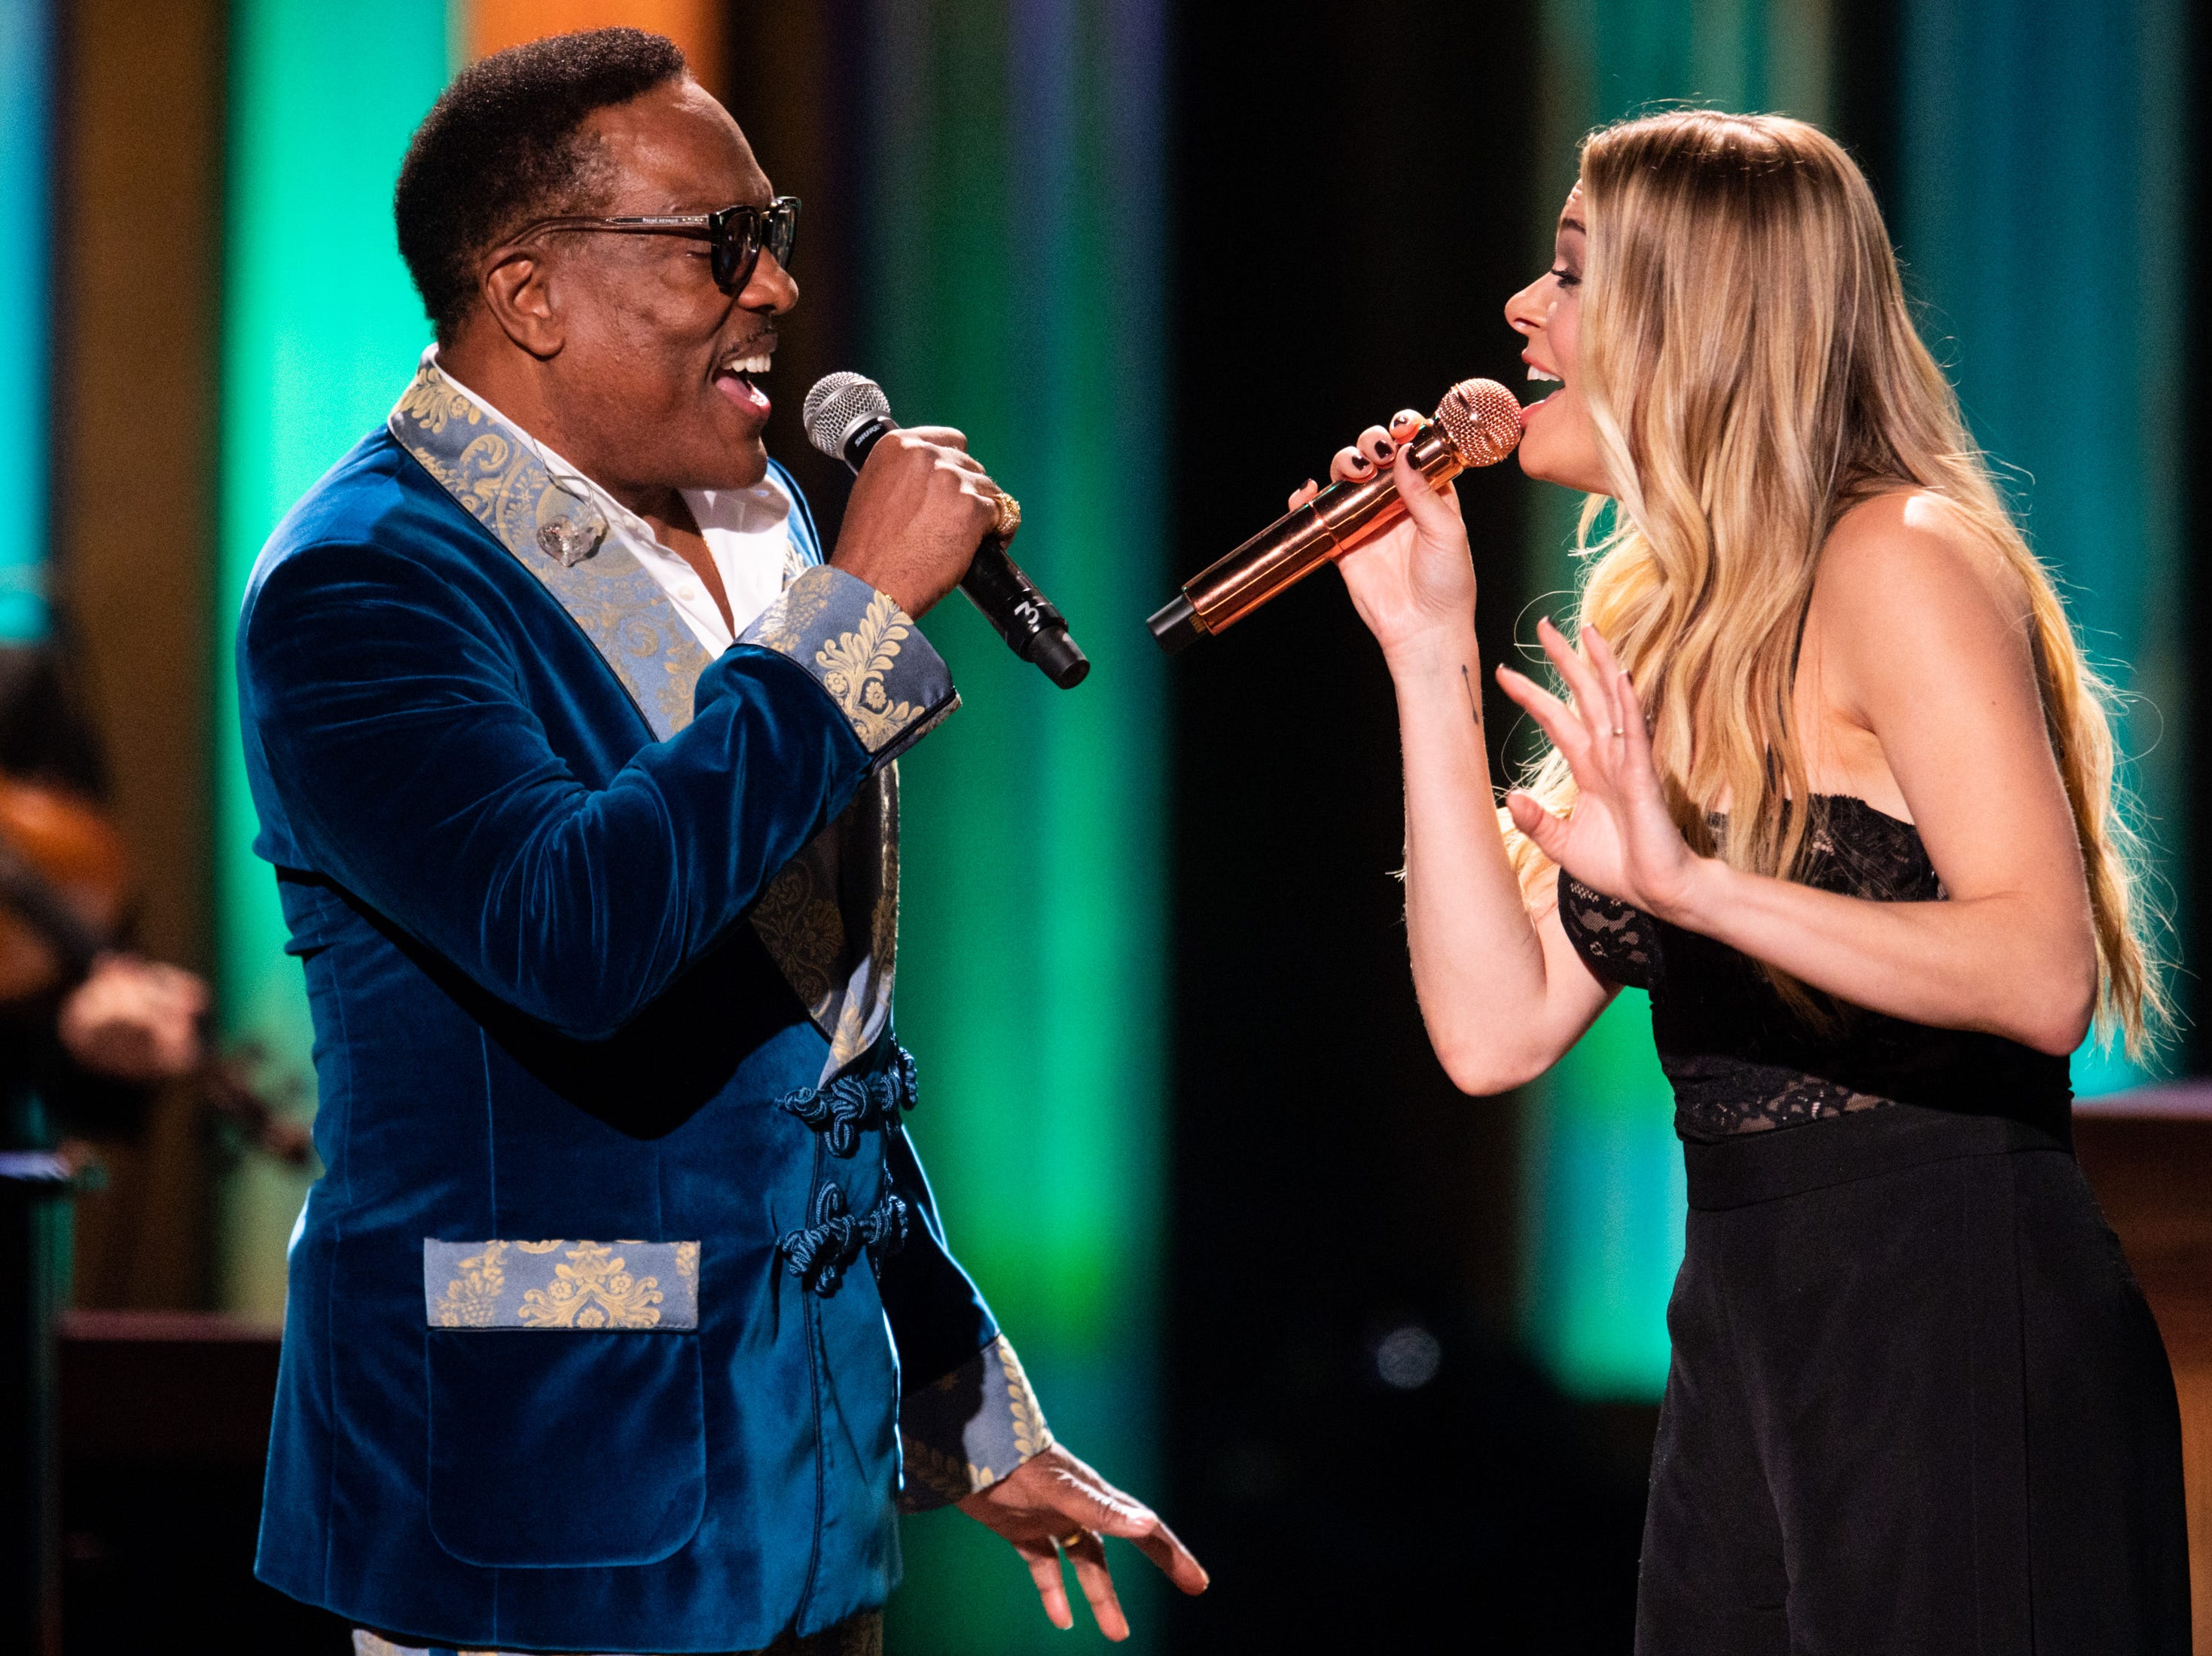 Charlie Wilson and LeAnn Rimes perform during the An Opry Salute to Ray Charles concert at The Grand Ole Opry in Nashville, Tenn., Monday, Oct. 8, 2018.